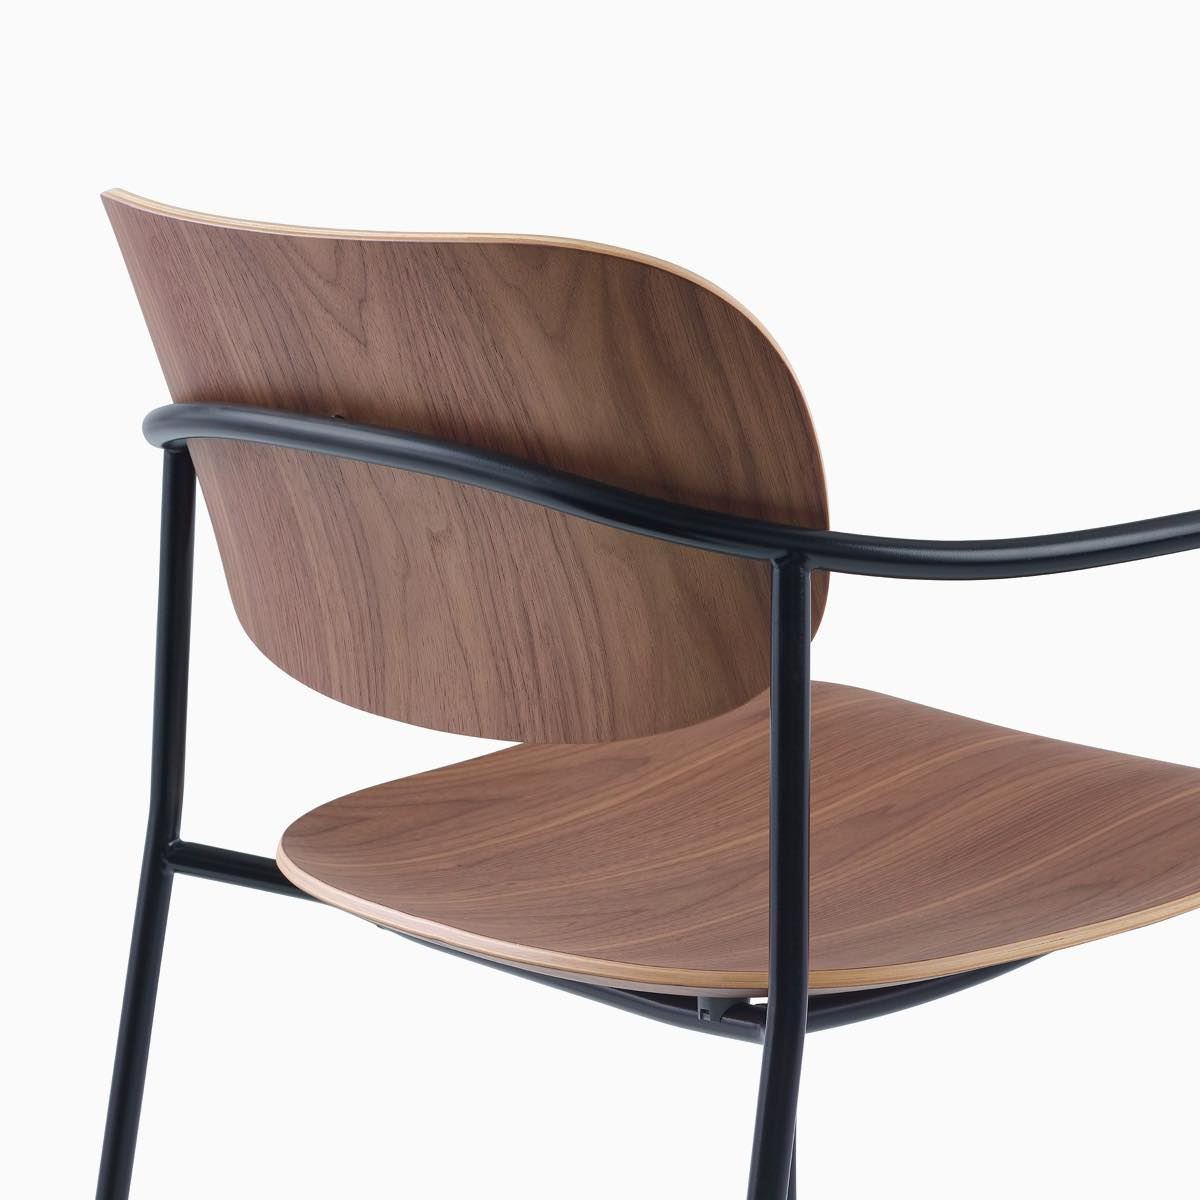 Detail image of Portrait Chair with Walnut seat and back, and black frame with arms.